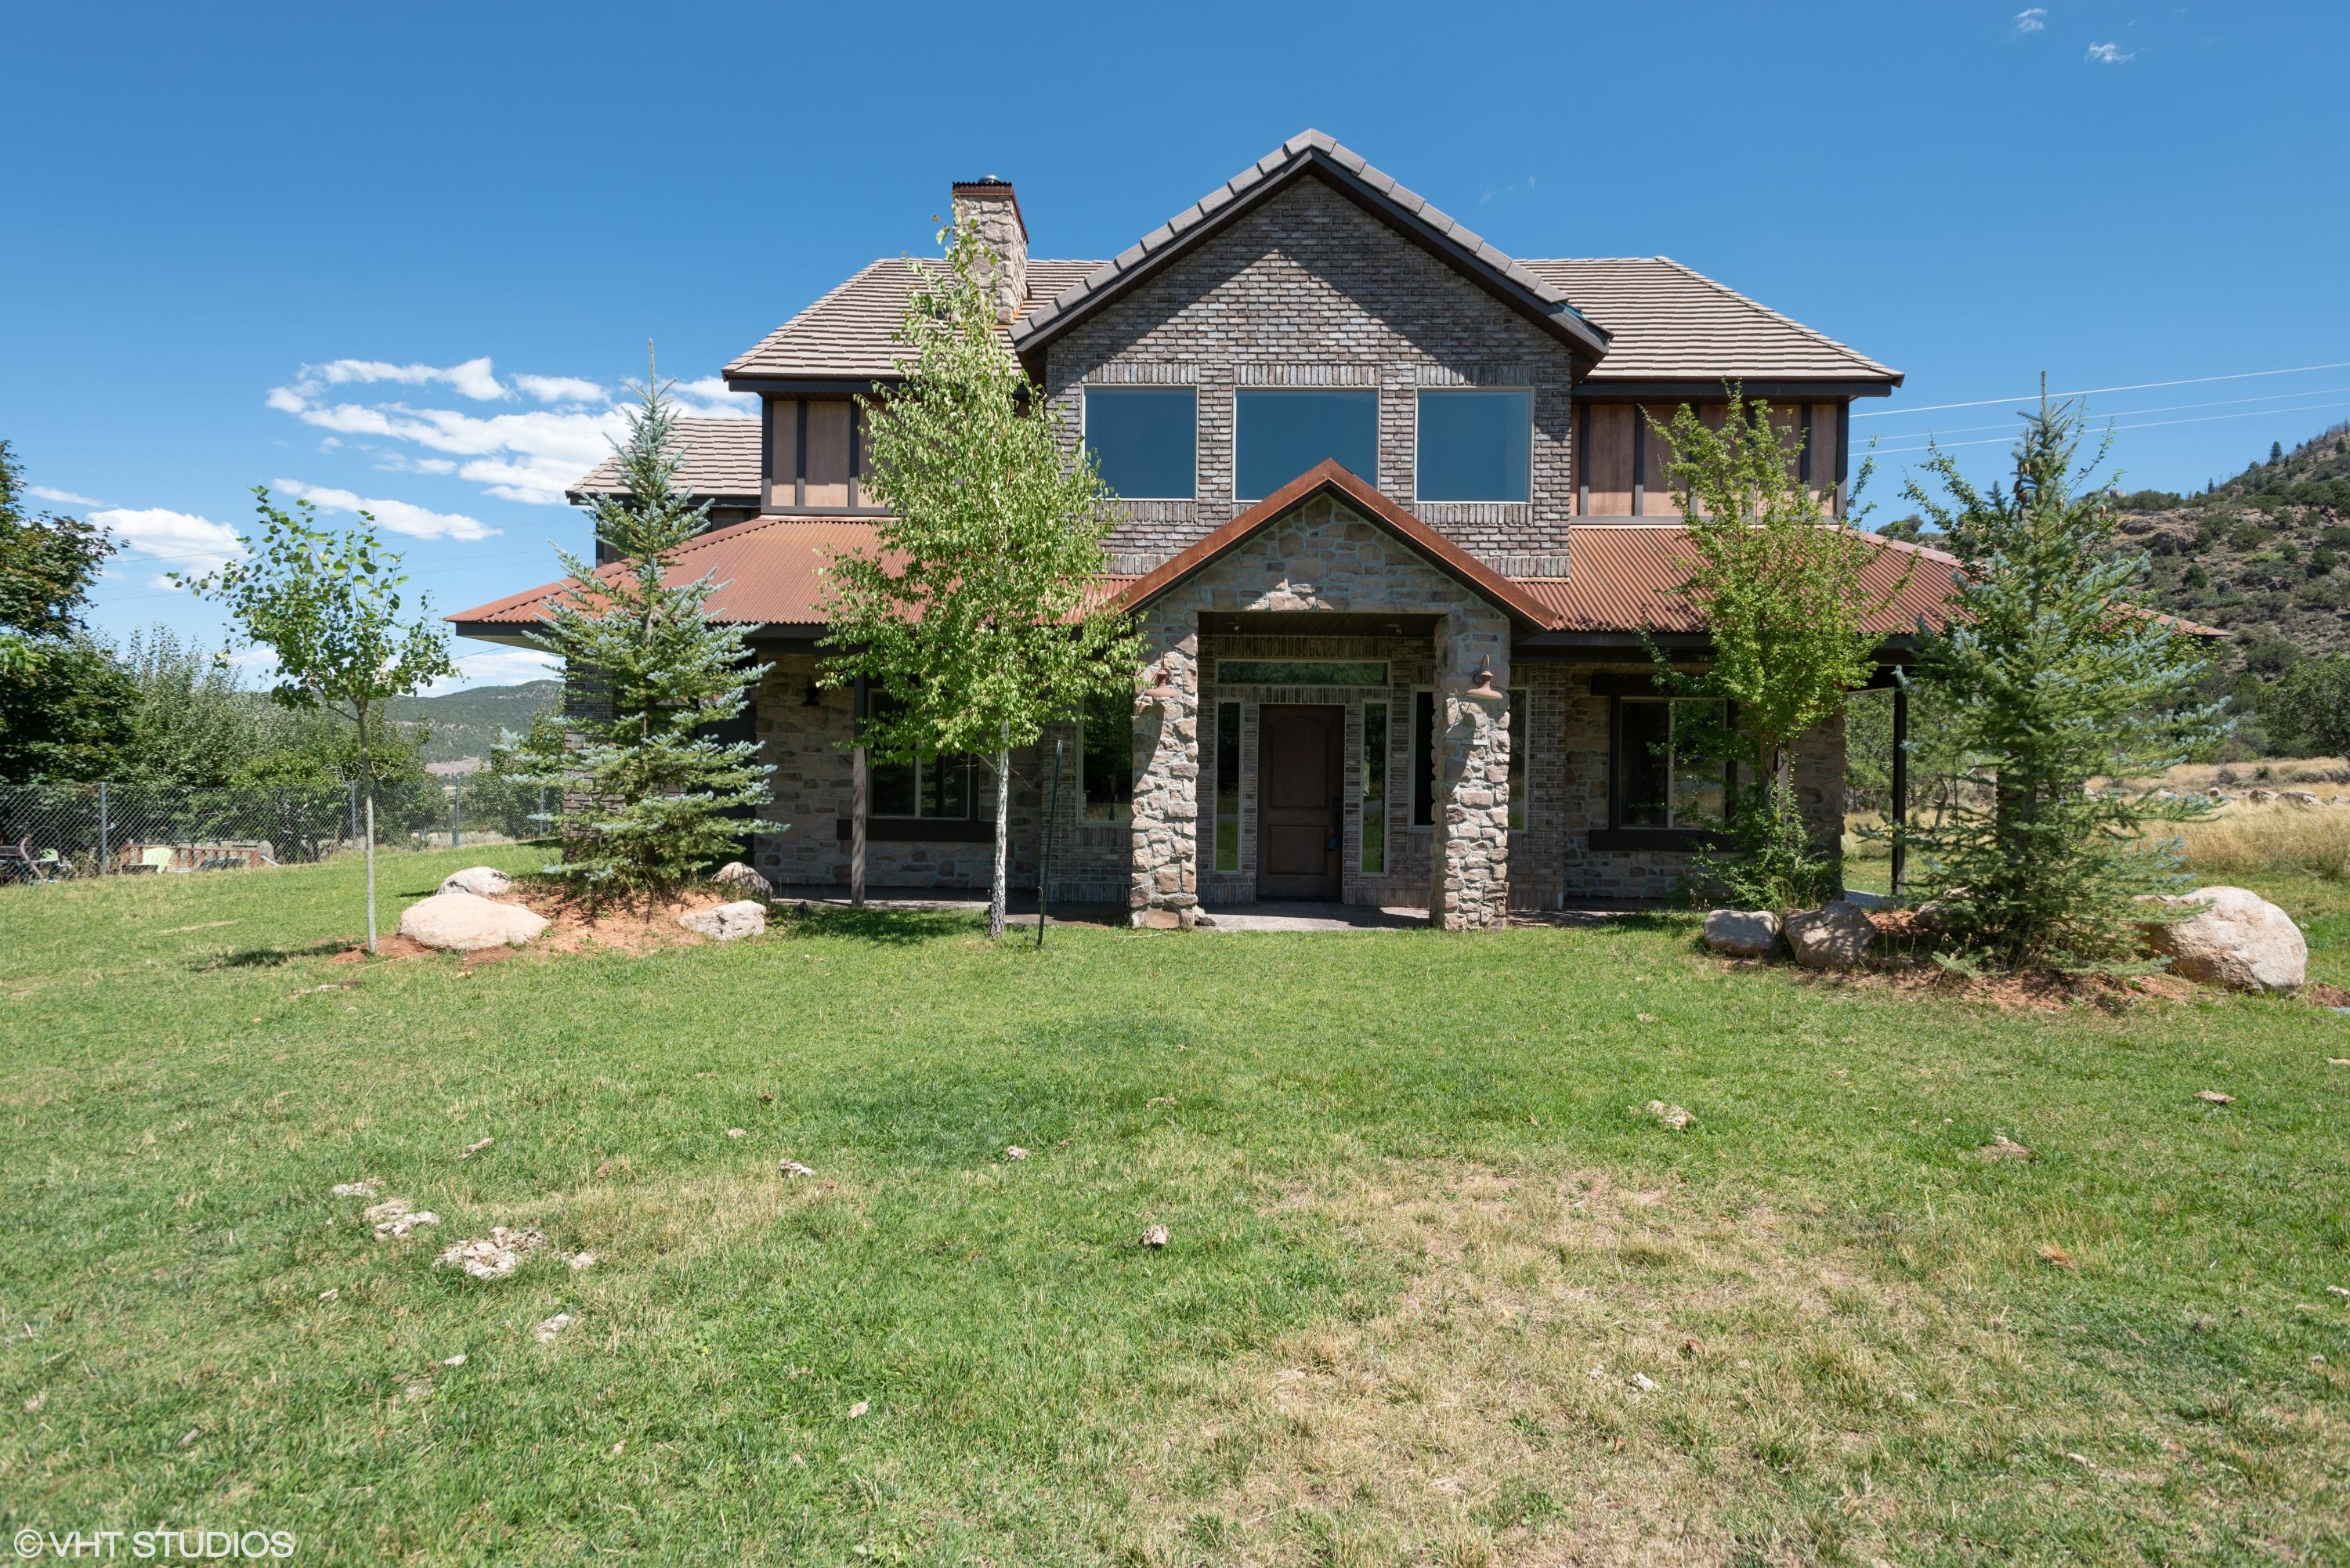 445 S Lloyd Canyon Rd, Pine Valley Ut 84781